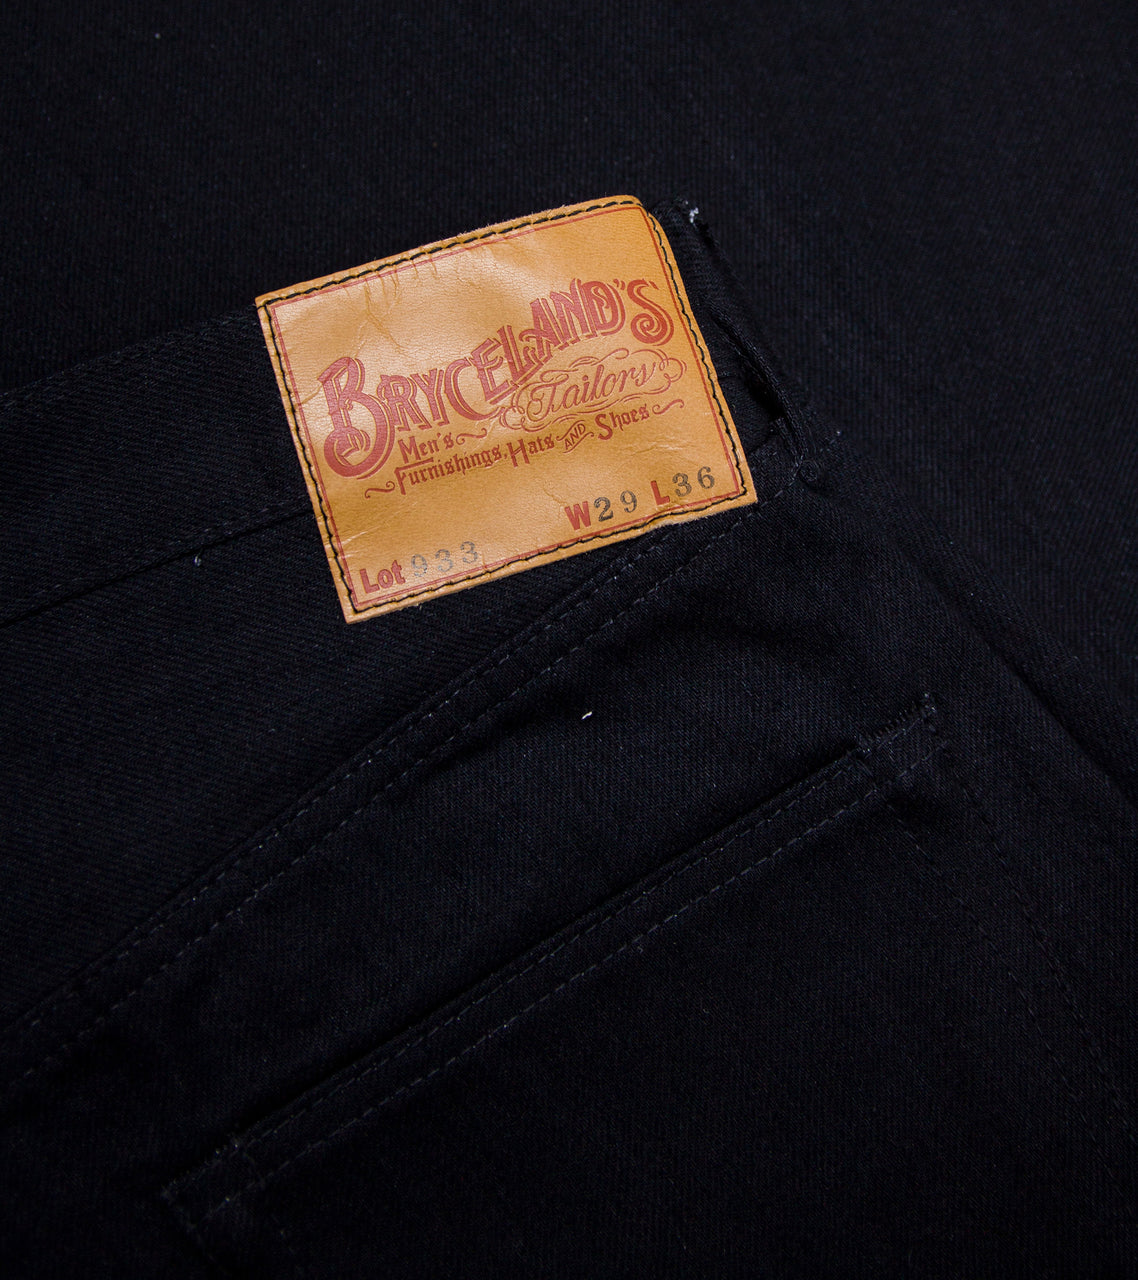 Bryceland's Denim 933 Black